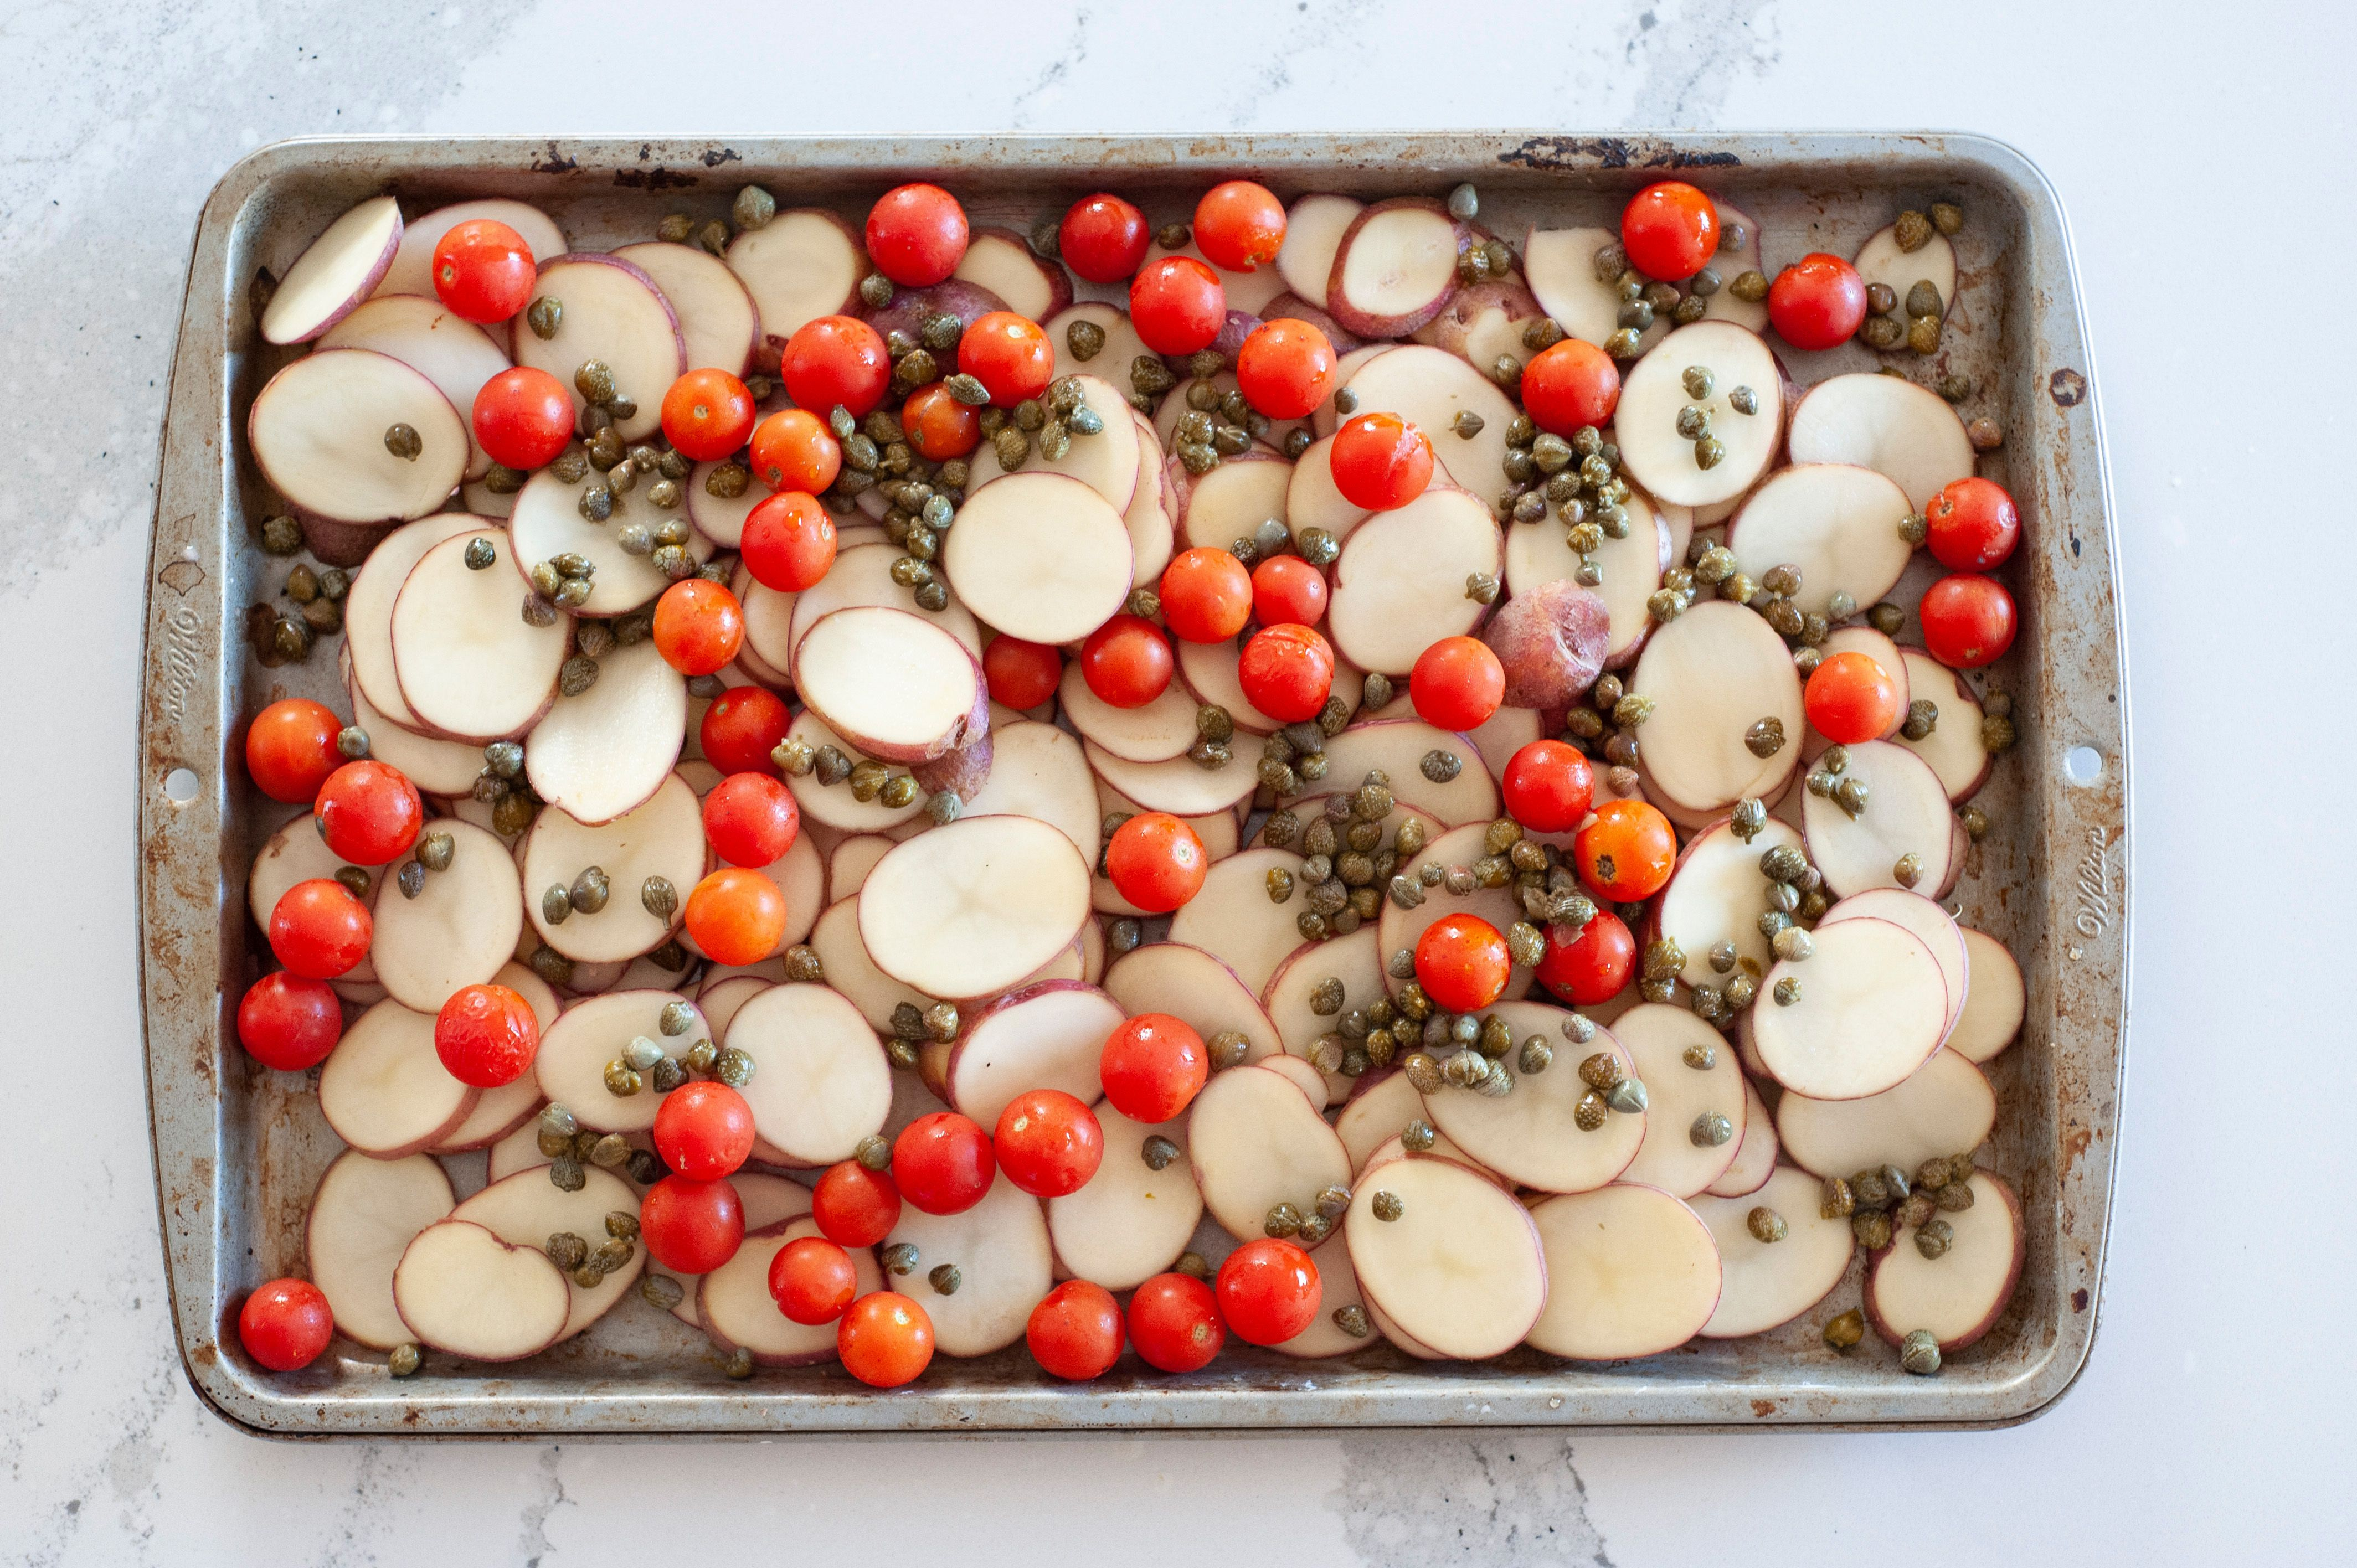 Overhead view of a sheet pan with potatoes and cherry tomatoes.